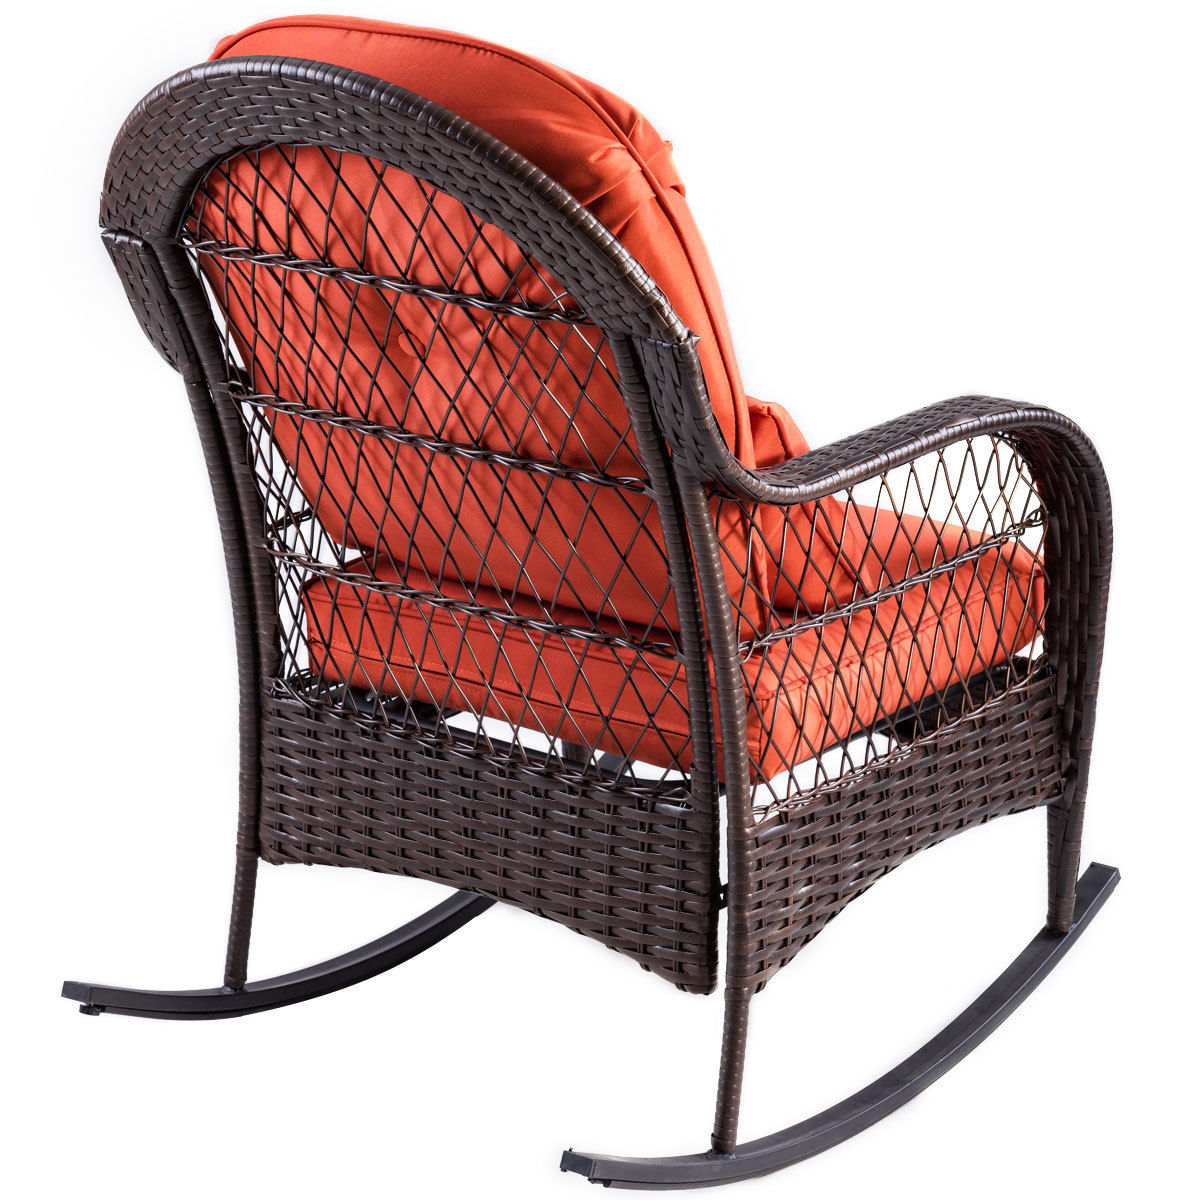 Rattan Wicker Rocking Chair Cushion Menards Patio Chairs For One Cent Giantex Modern Porch Deck Rocker Outdoor Furniture With Padded Hw57256 Aliexpress Com Imall